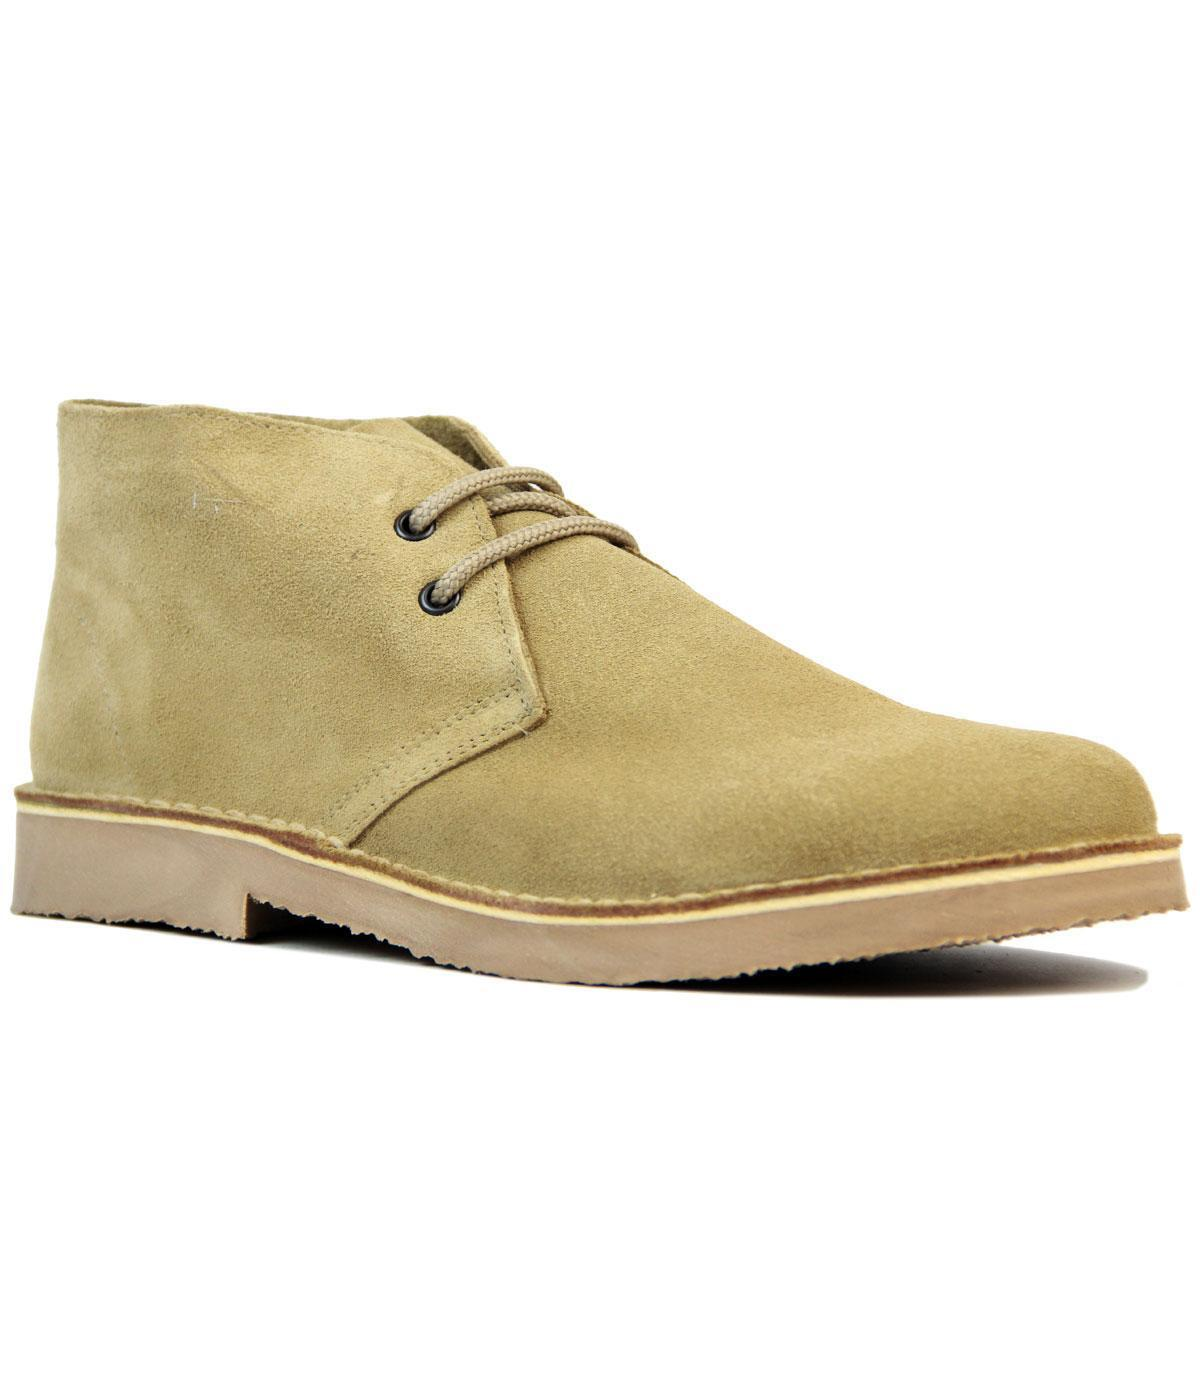 NEW MOD RETRO SIXTIES MENS DESERT Desert BOOTS CAMEL Taupe Suede M400TS RACK 14D